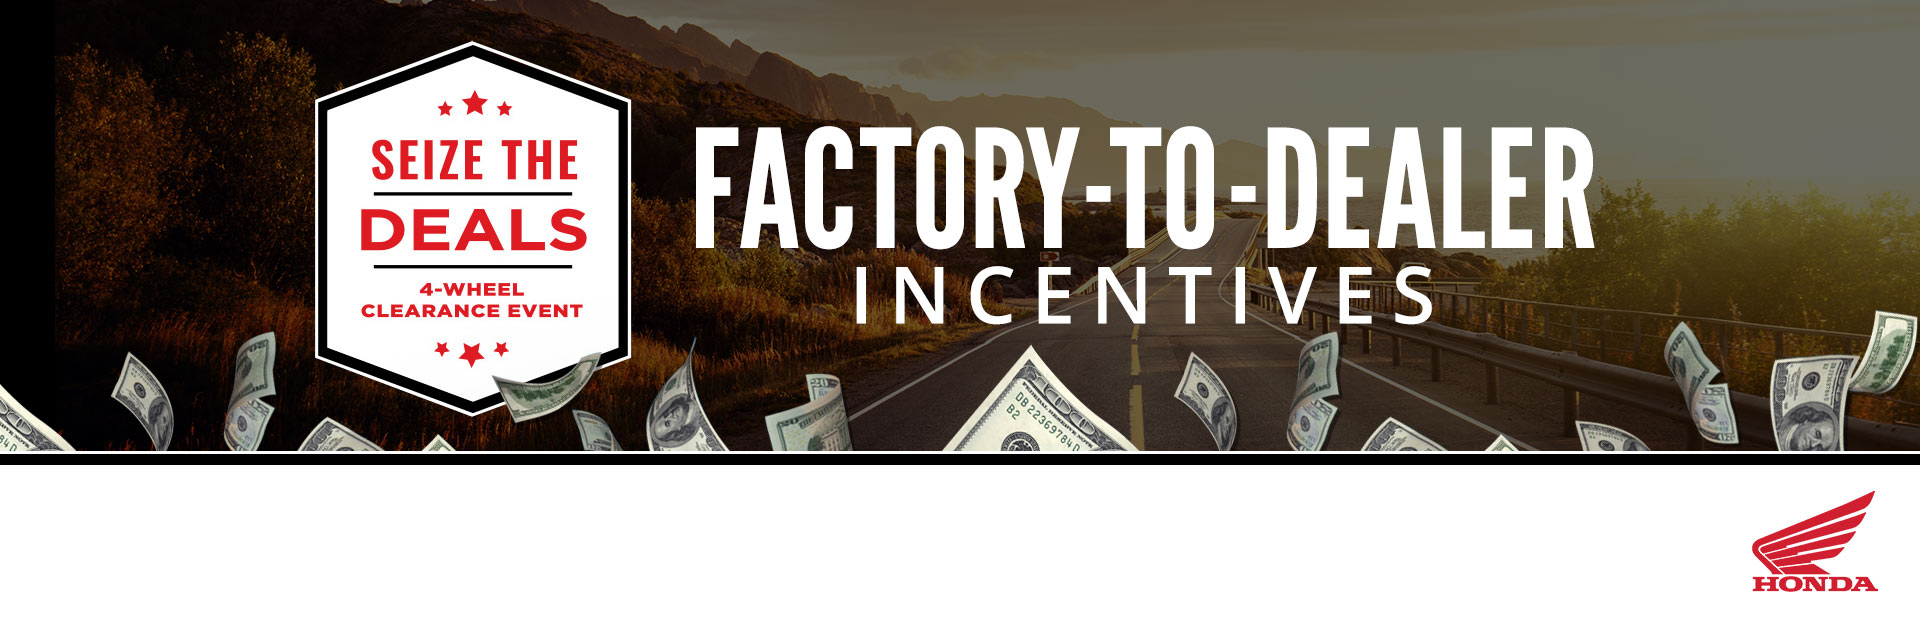 Factory-To-Dealer Incentives